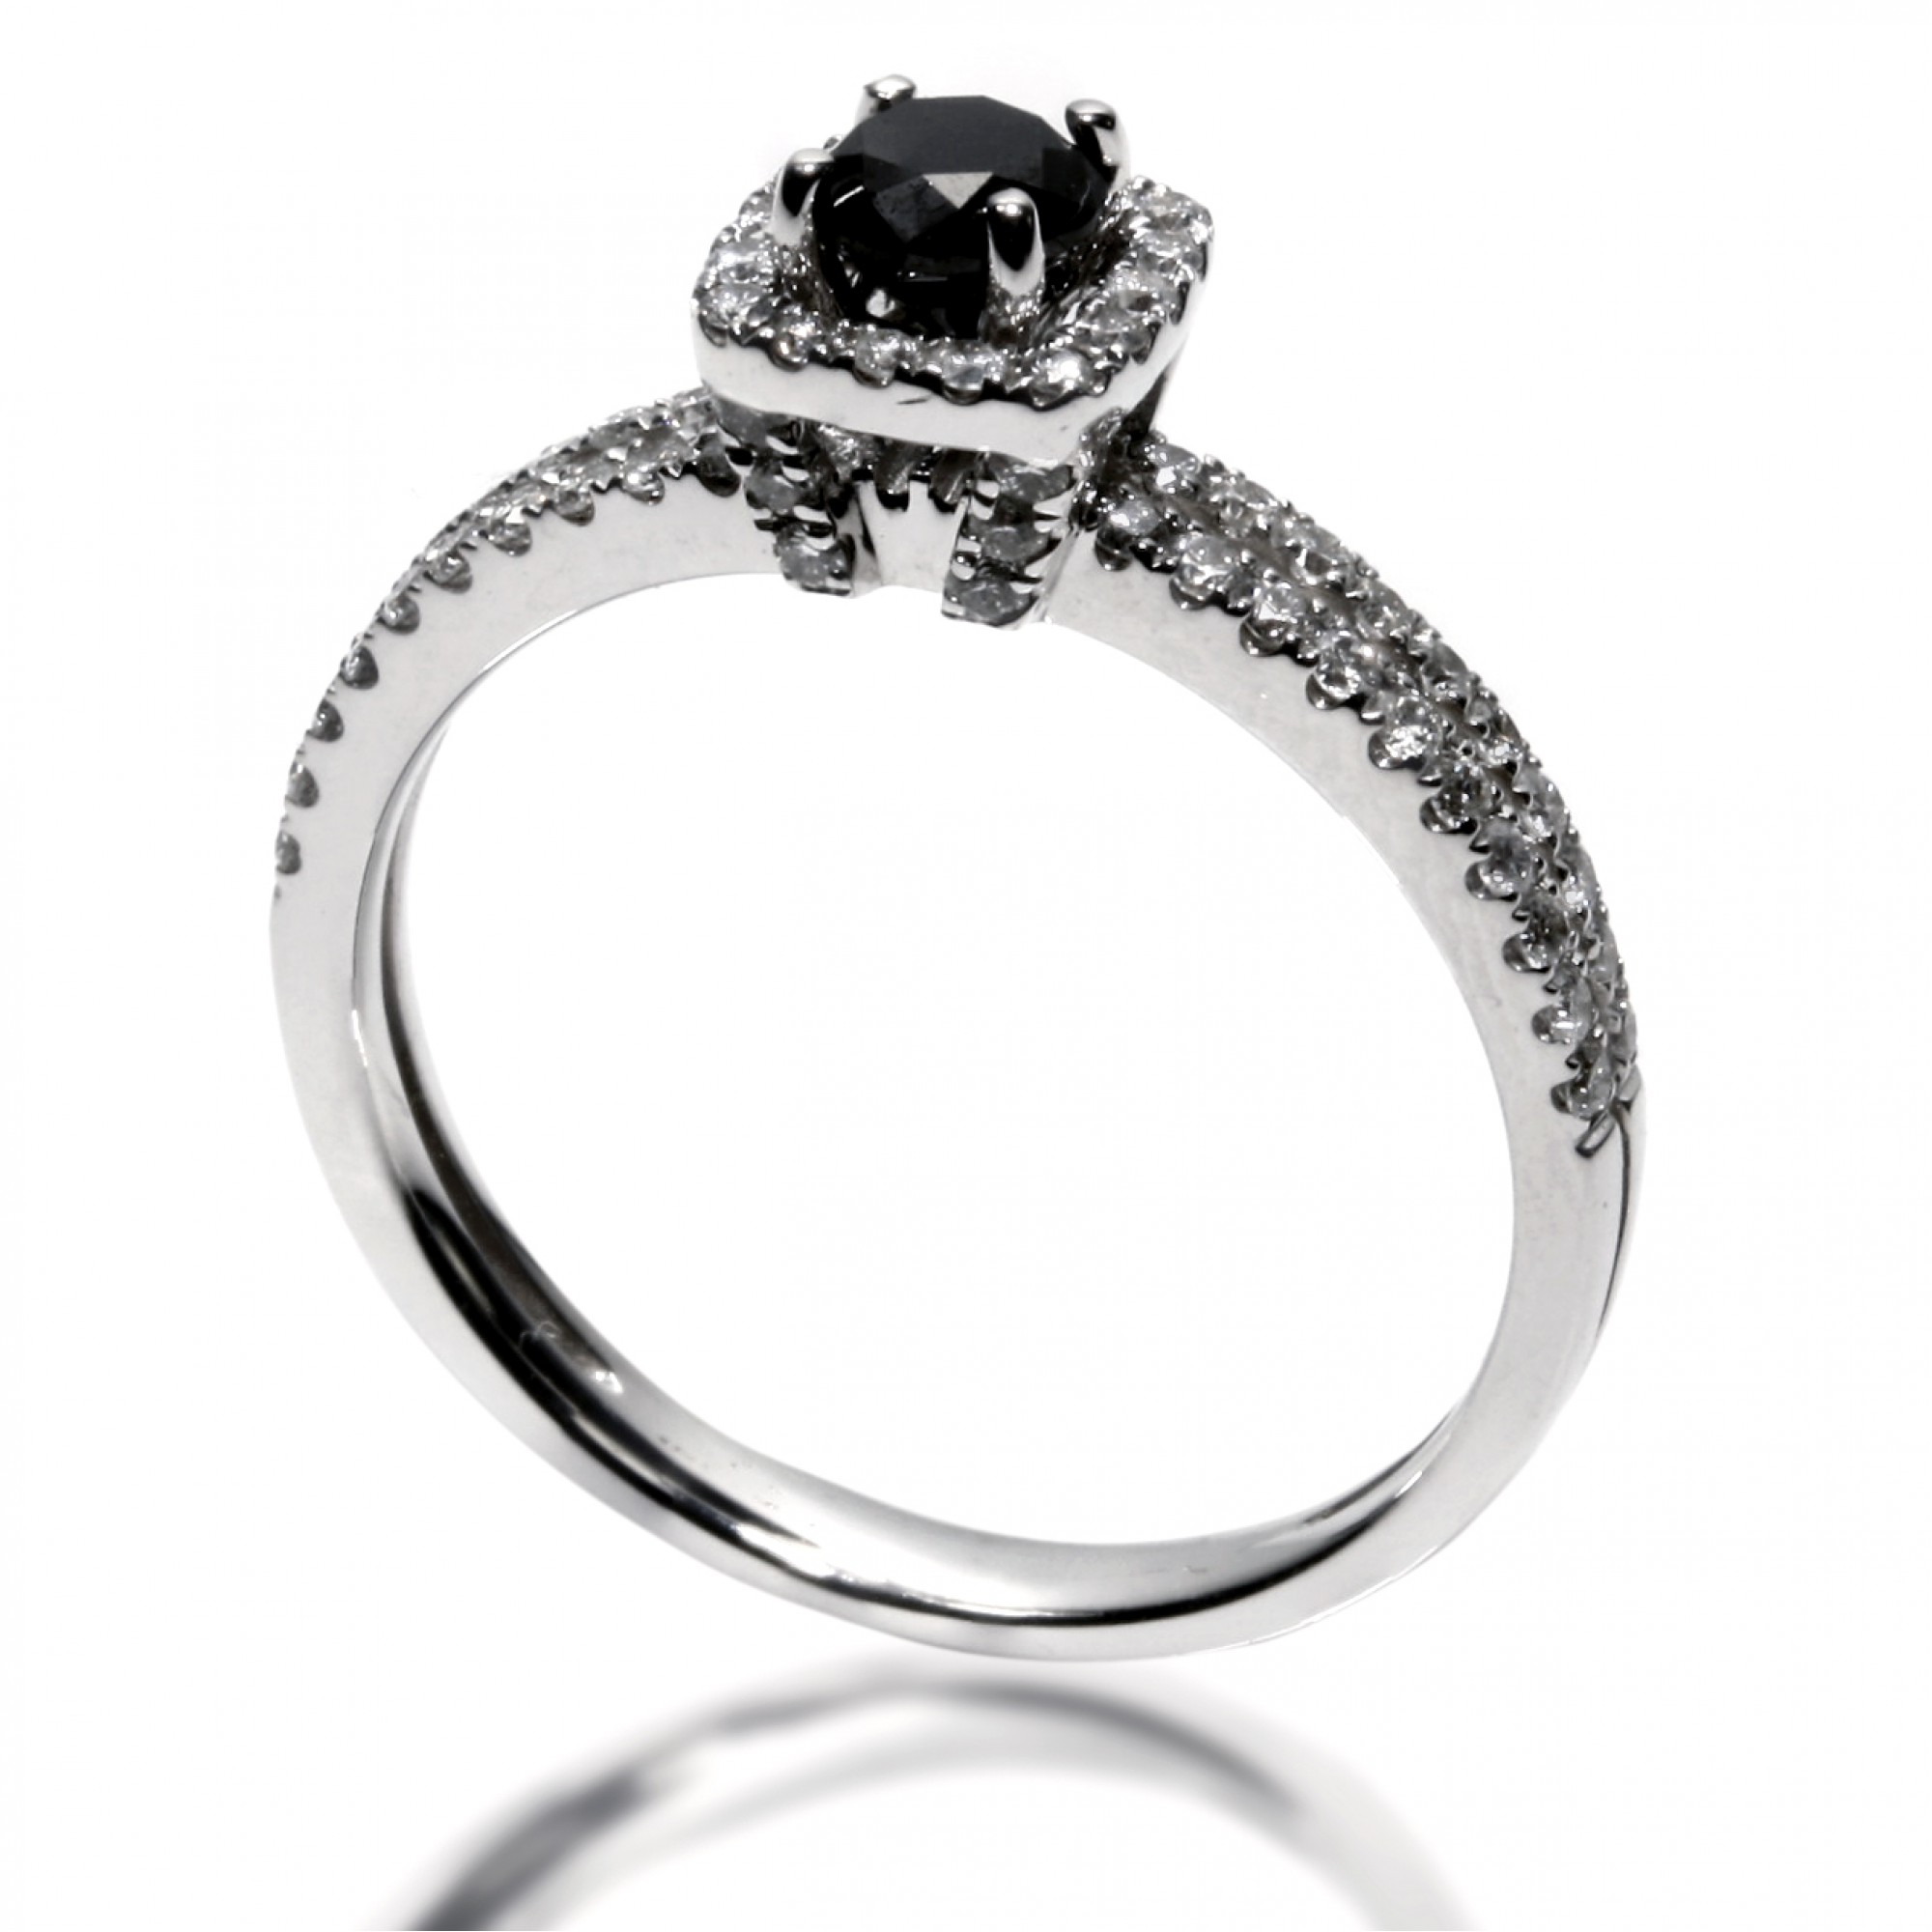 0 88 Cts 18k White Gold Black Diamond Engagement Ring Cheap Diamond Engagement Rings Buy Cheap Diamond Jewelry Diamond Engagement Rings Buy Engaged Rings Online Fine Jewelry Best Rings Engaged Ring Diamonds Forever Diamonds For